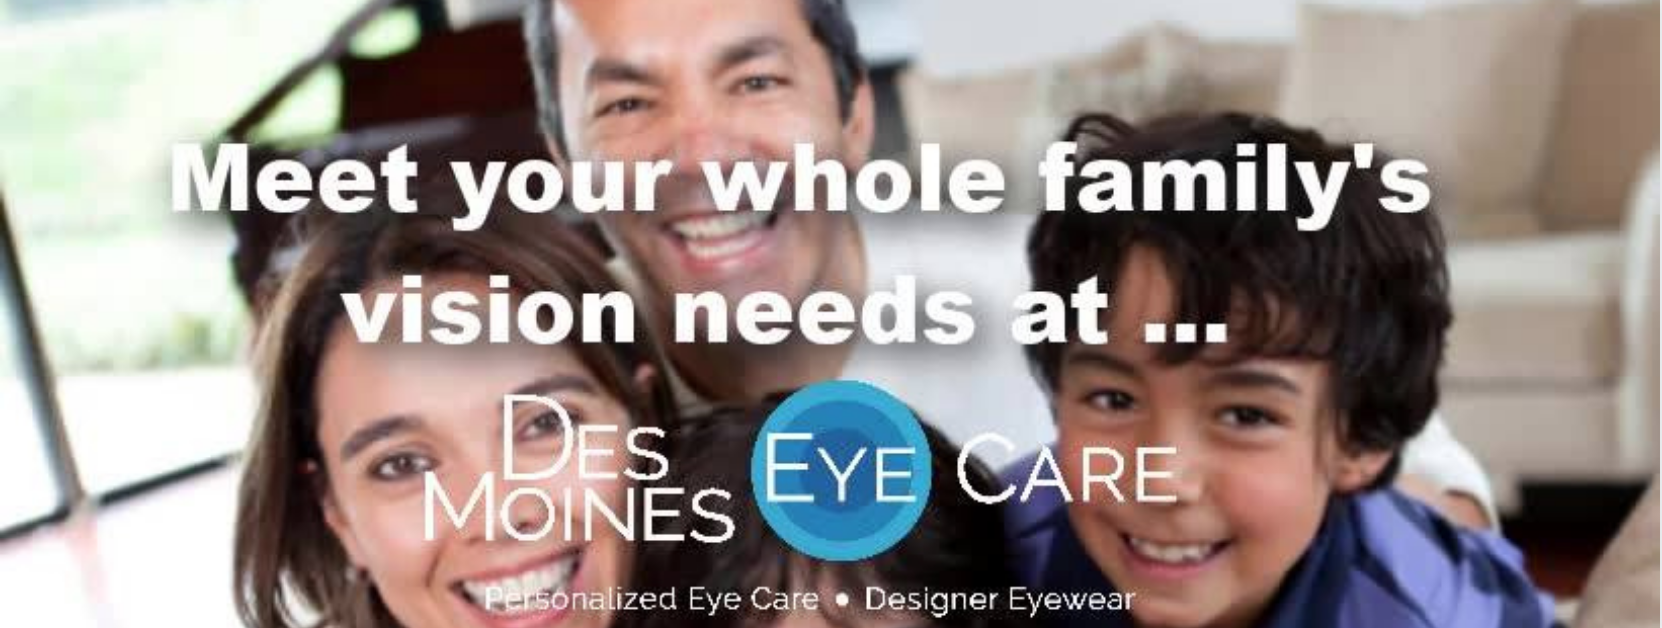 Des Moines Eye Care reviews | Optometrists at 2600 Grand Ave Ste 202 - Des Moines IA